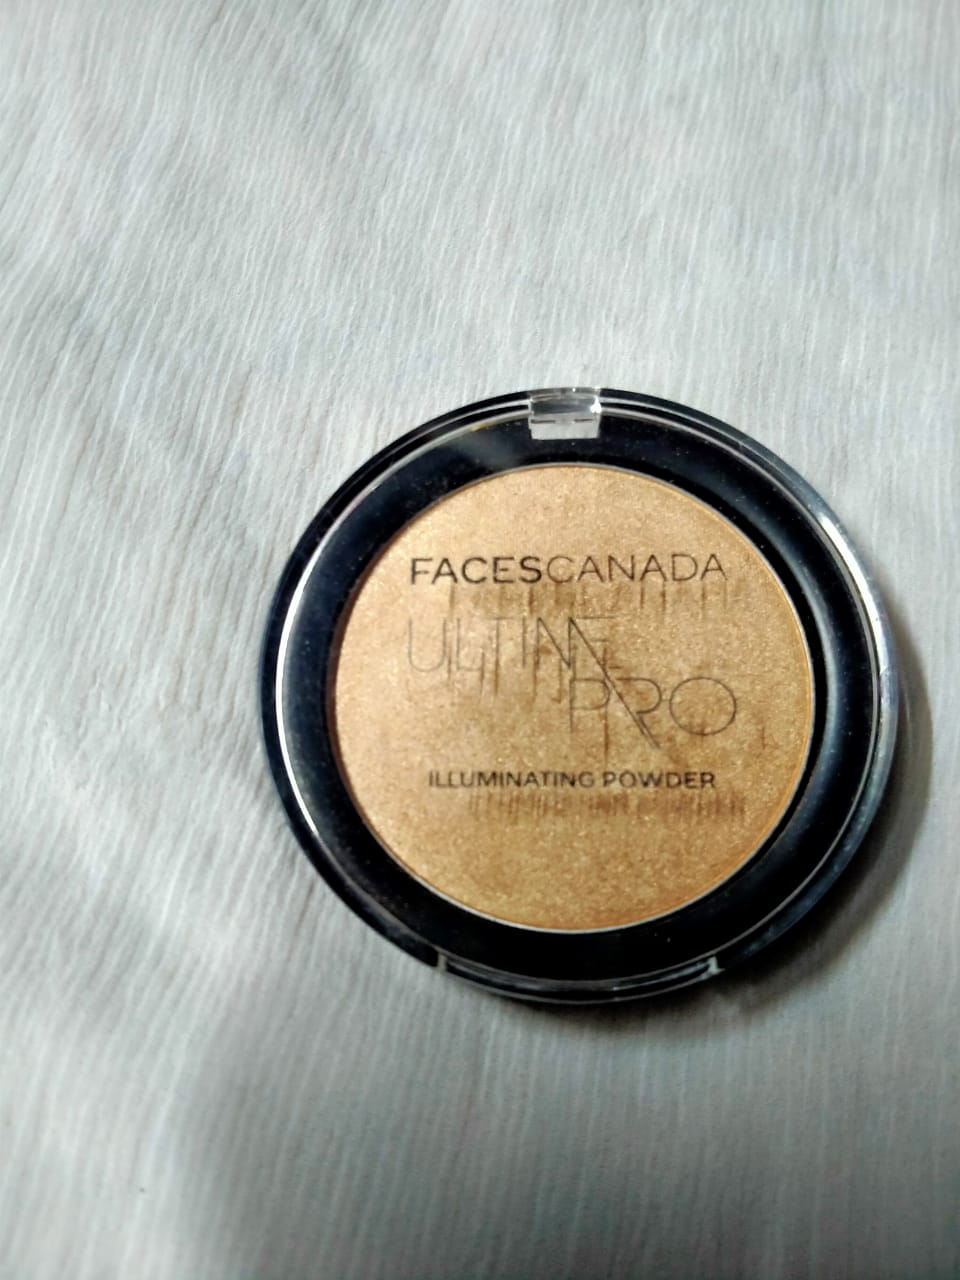 Faces Ultime Pro Illuminating Powder-Shine in the crowd!-By ishika_shaw-1